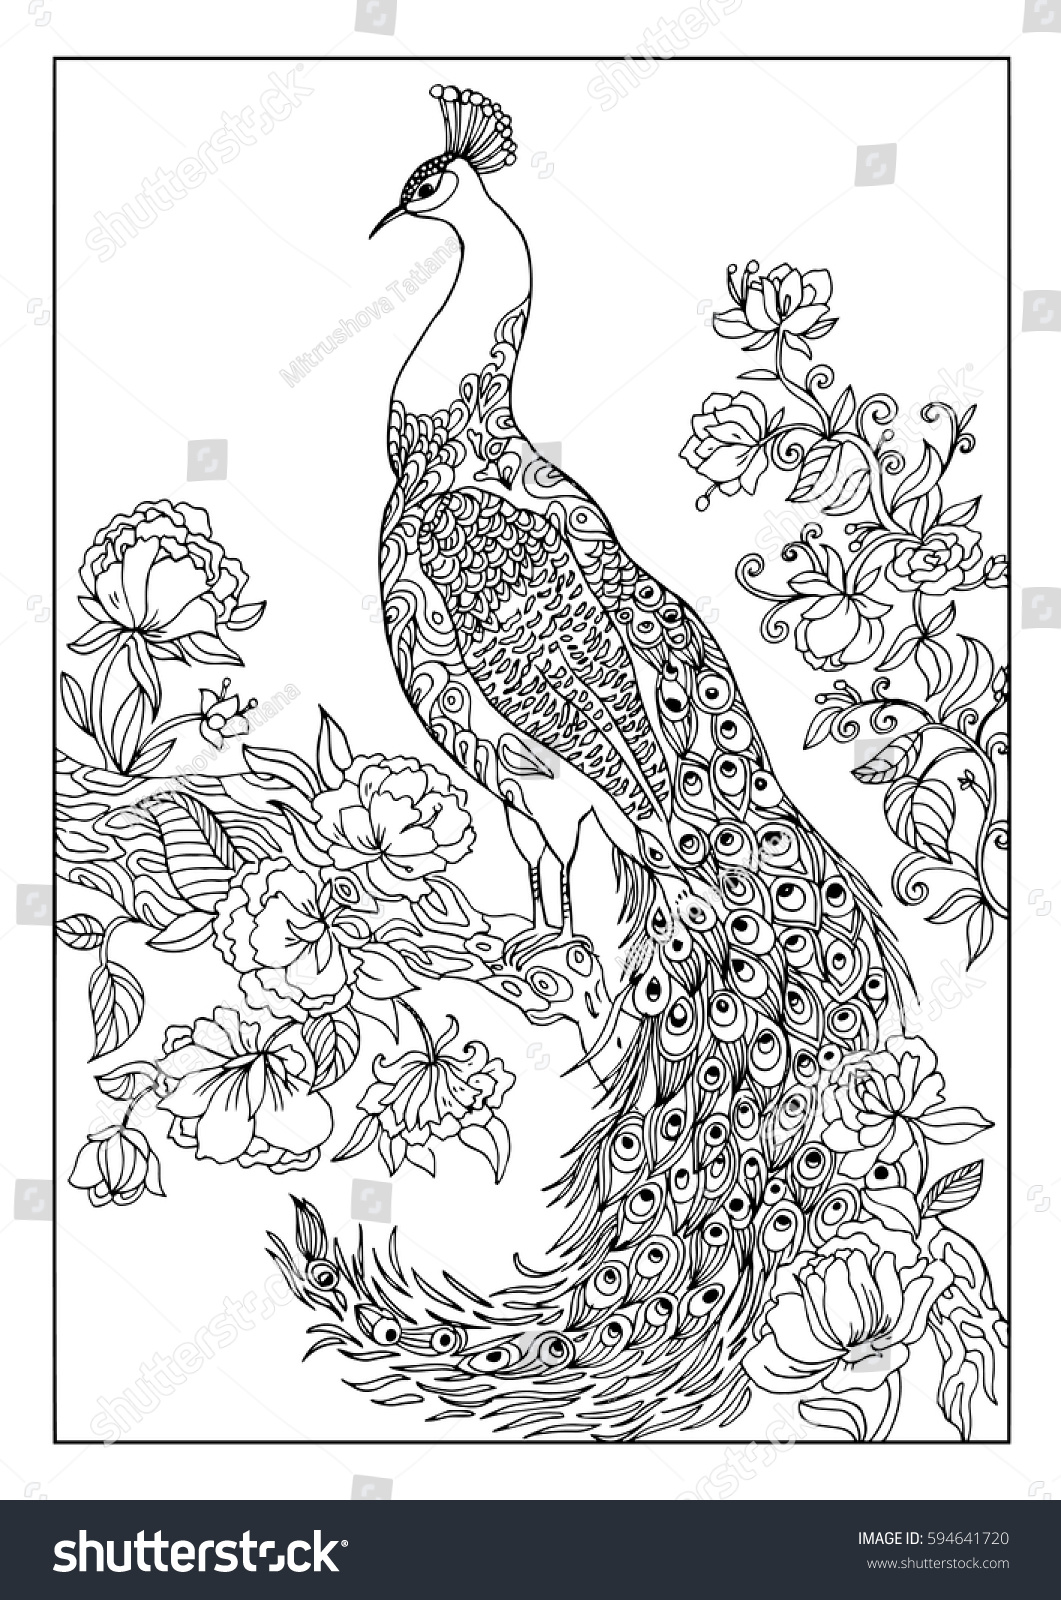 Peacock In Flowerscoloring Book For Adults Birdexoticoutline Drawing With